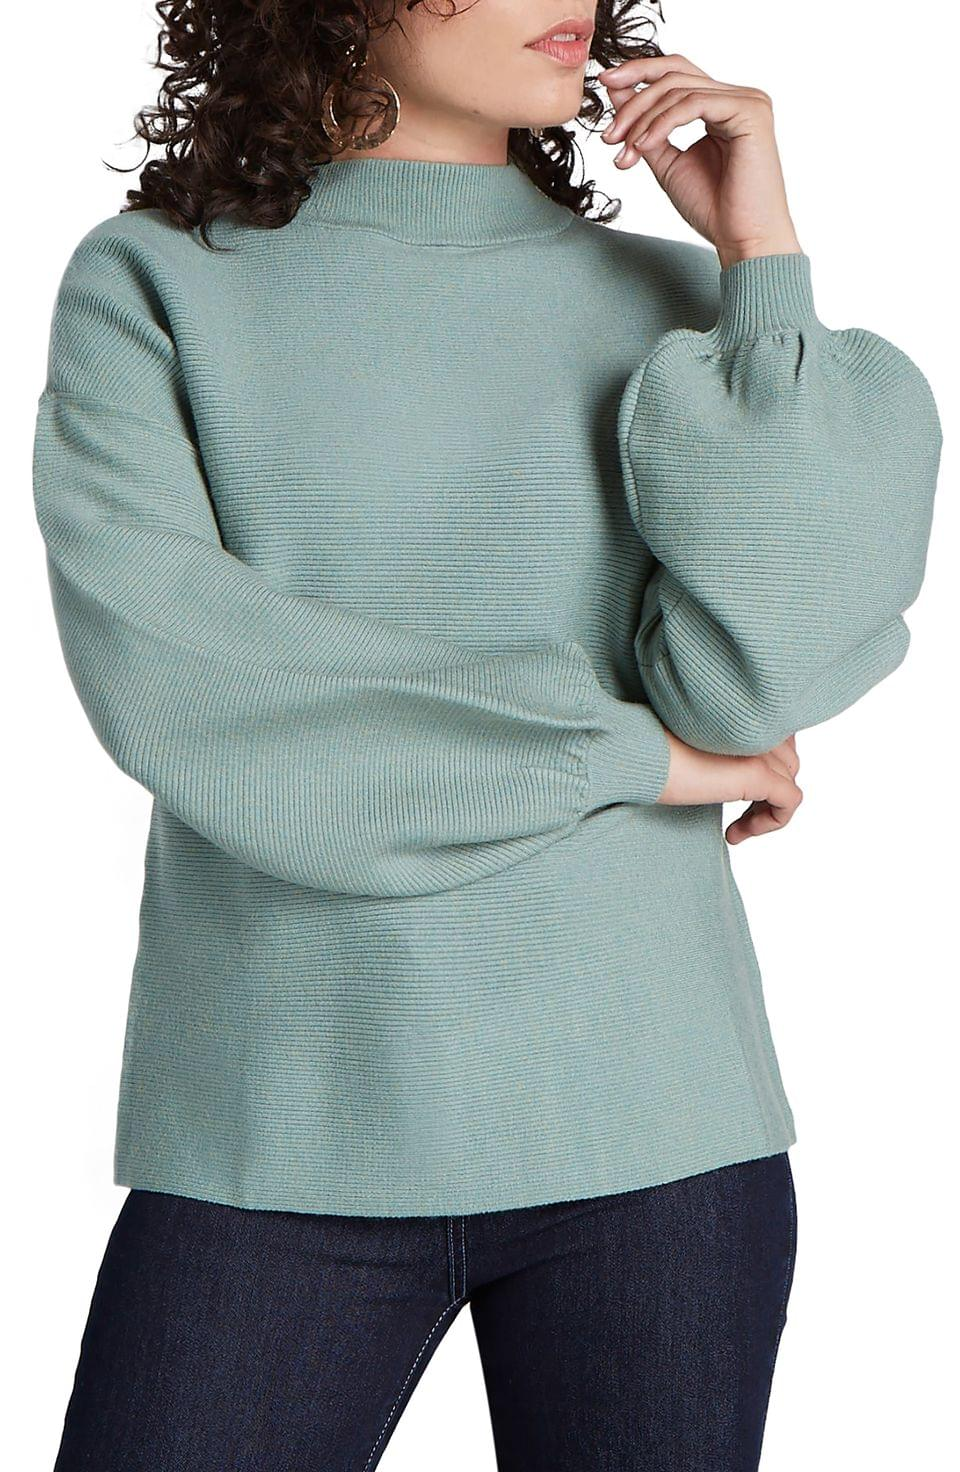 Women's ModCloth Balloon Sleeve Funnel Neck Sweater (Regular & Plus Size)